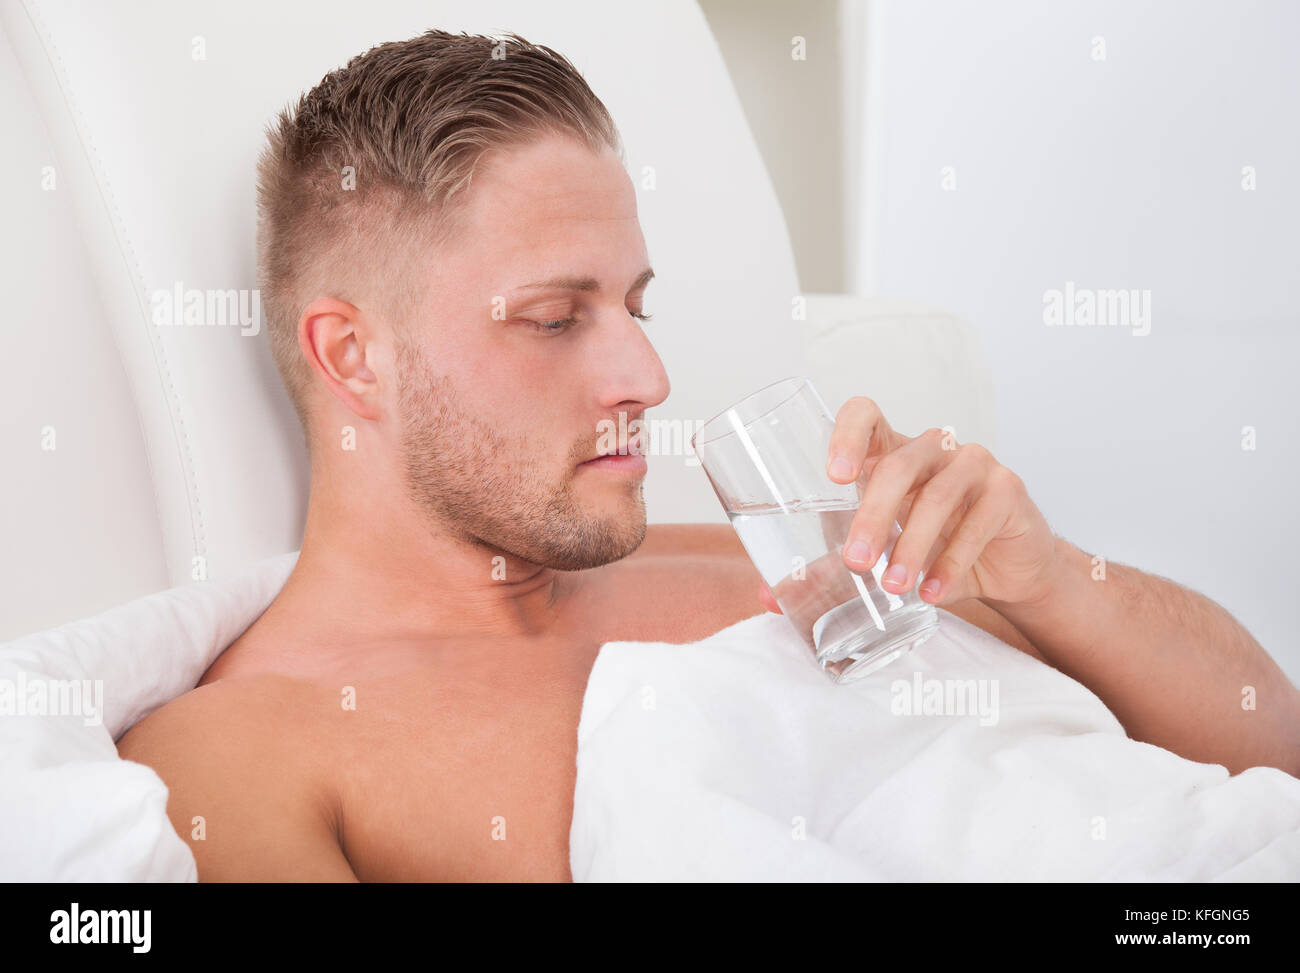 Man Lying In Bed Propped Up Against The Pillows Drinking A Glass Of